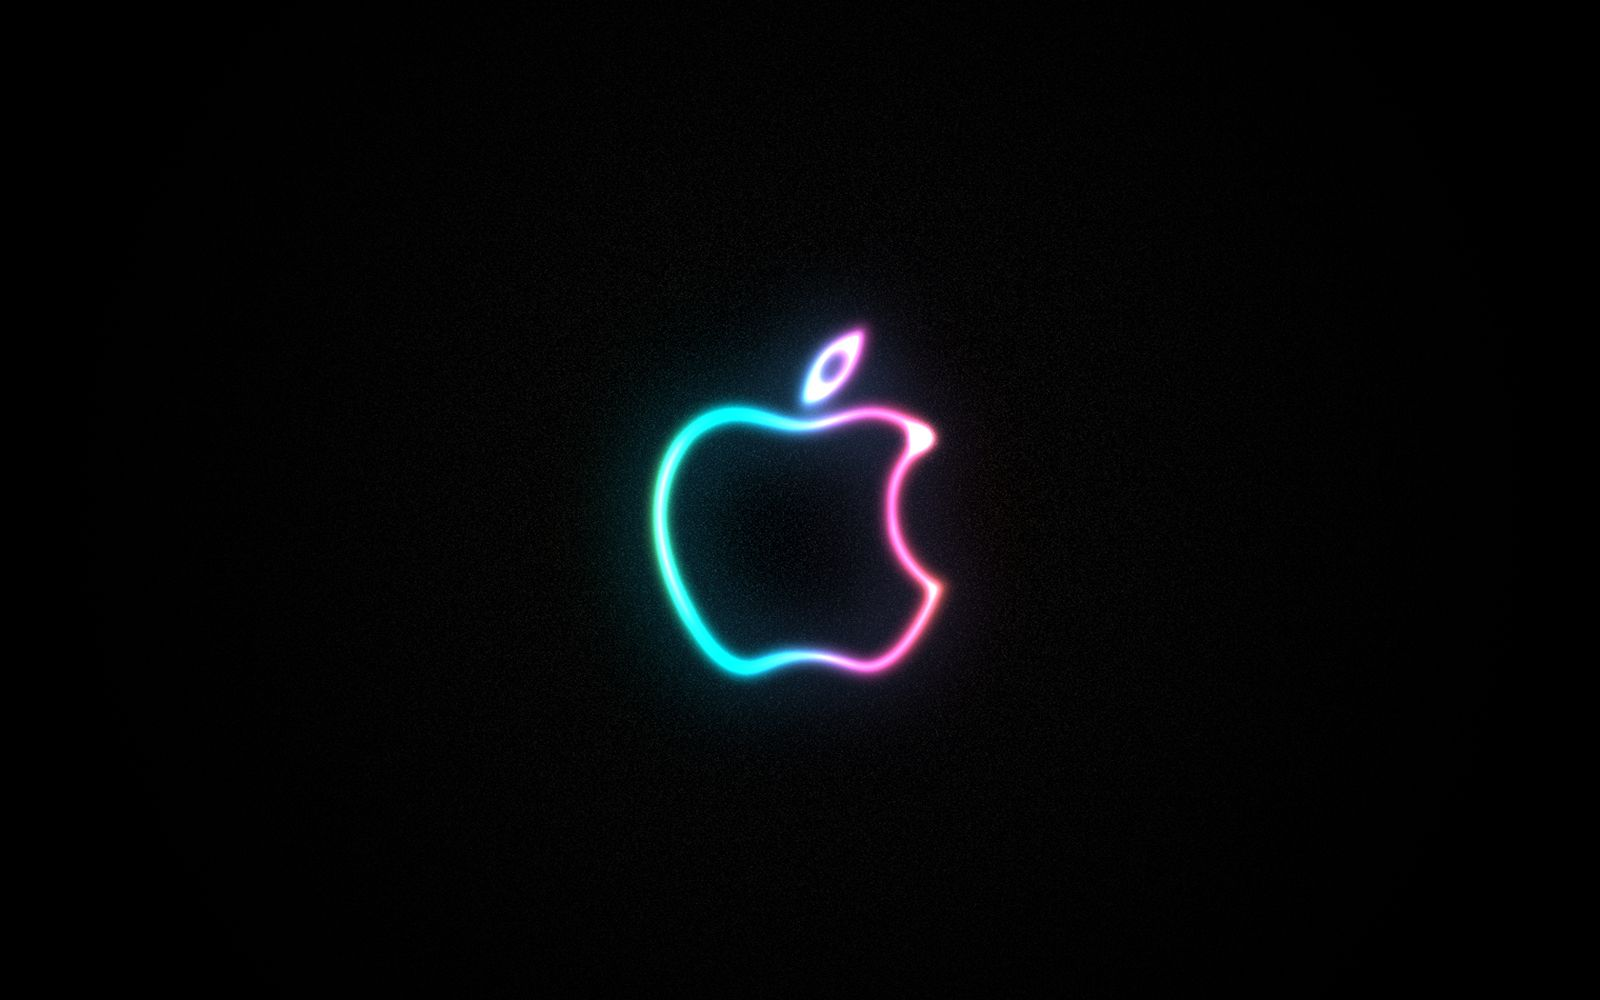 full hd wallpapers + computers, apple, mac, logos, black, neon